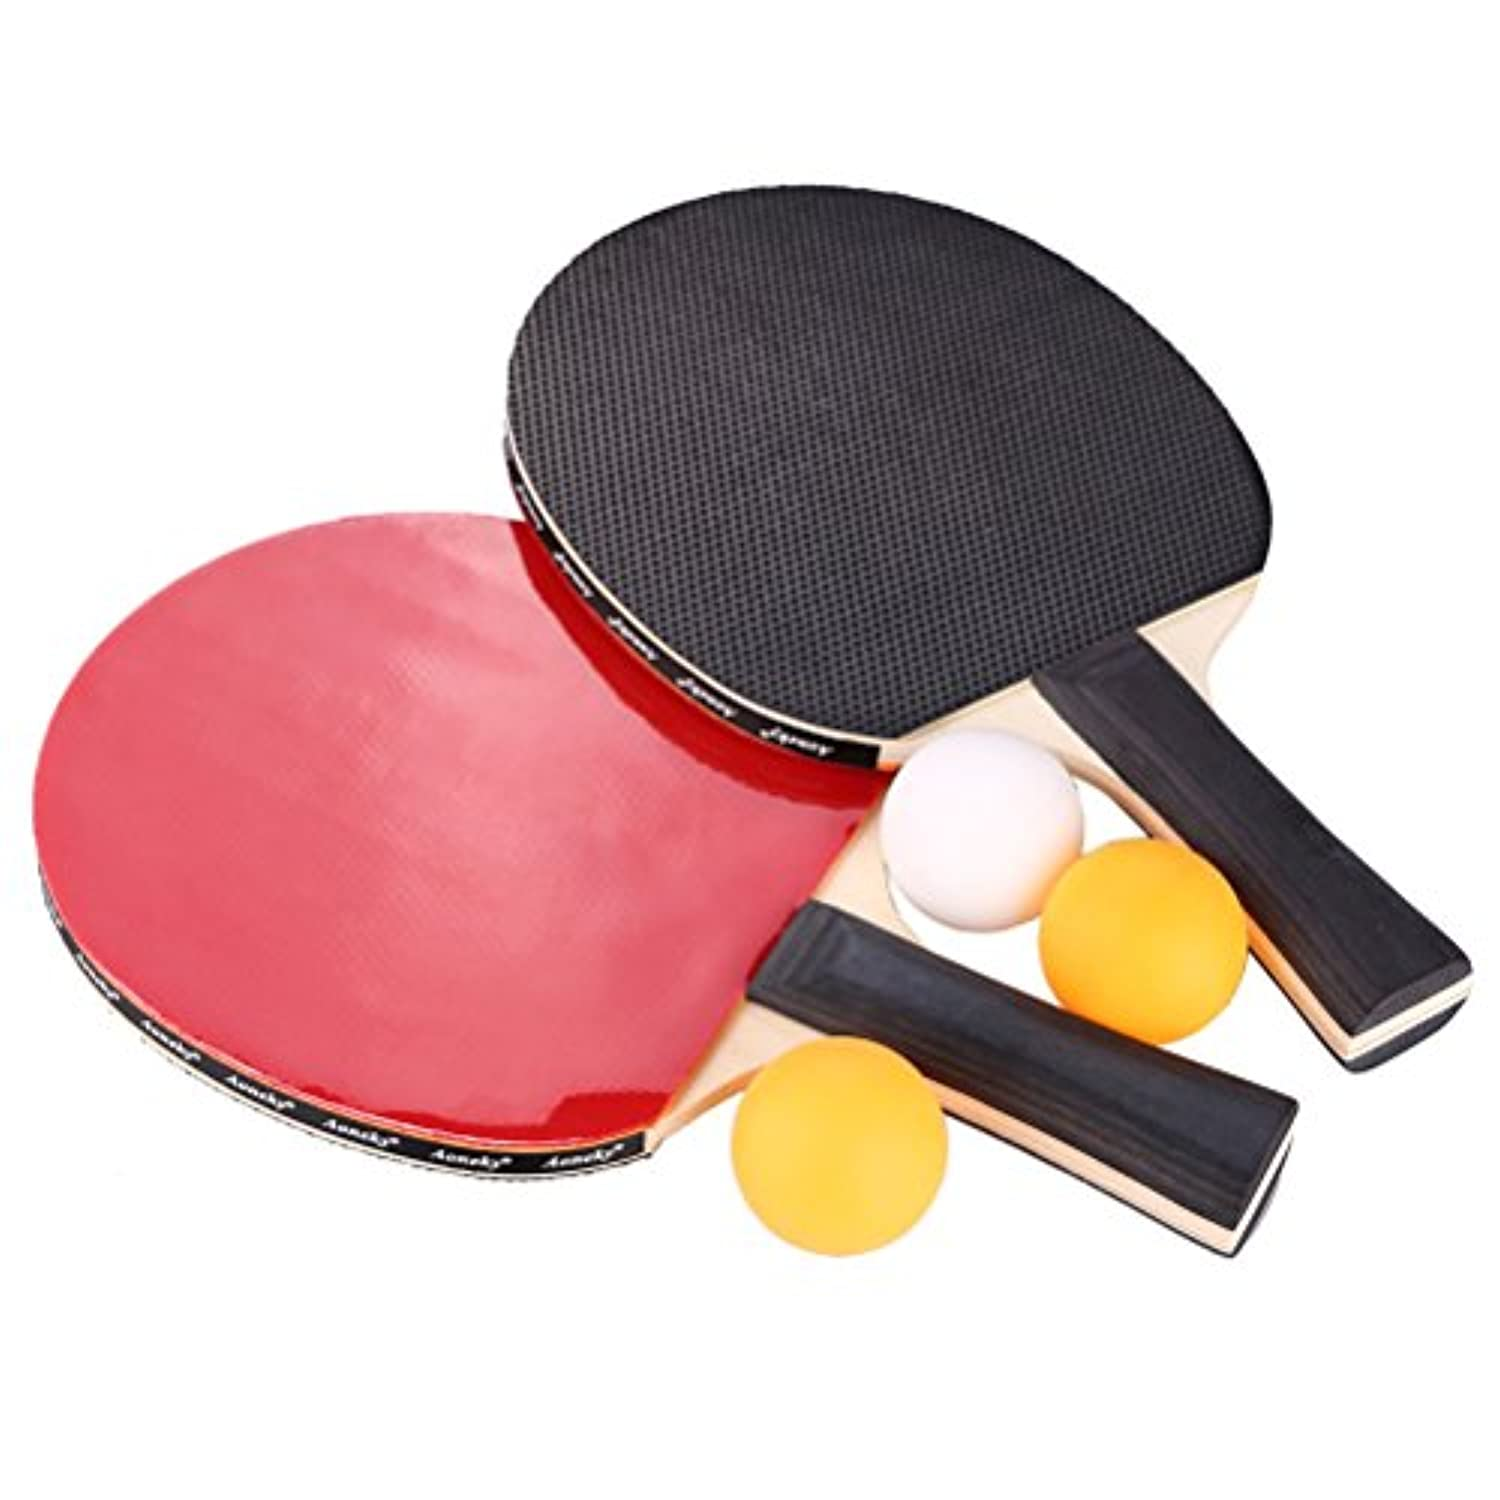 [Aoneky]Aoneky Ping Pong Paddle Set 2 Player Table Tennis Paddles with Cover and Balls 7977BK7718 [並行輸入品]